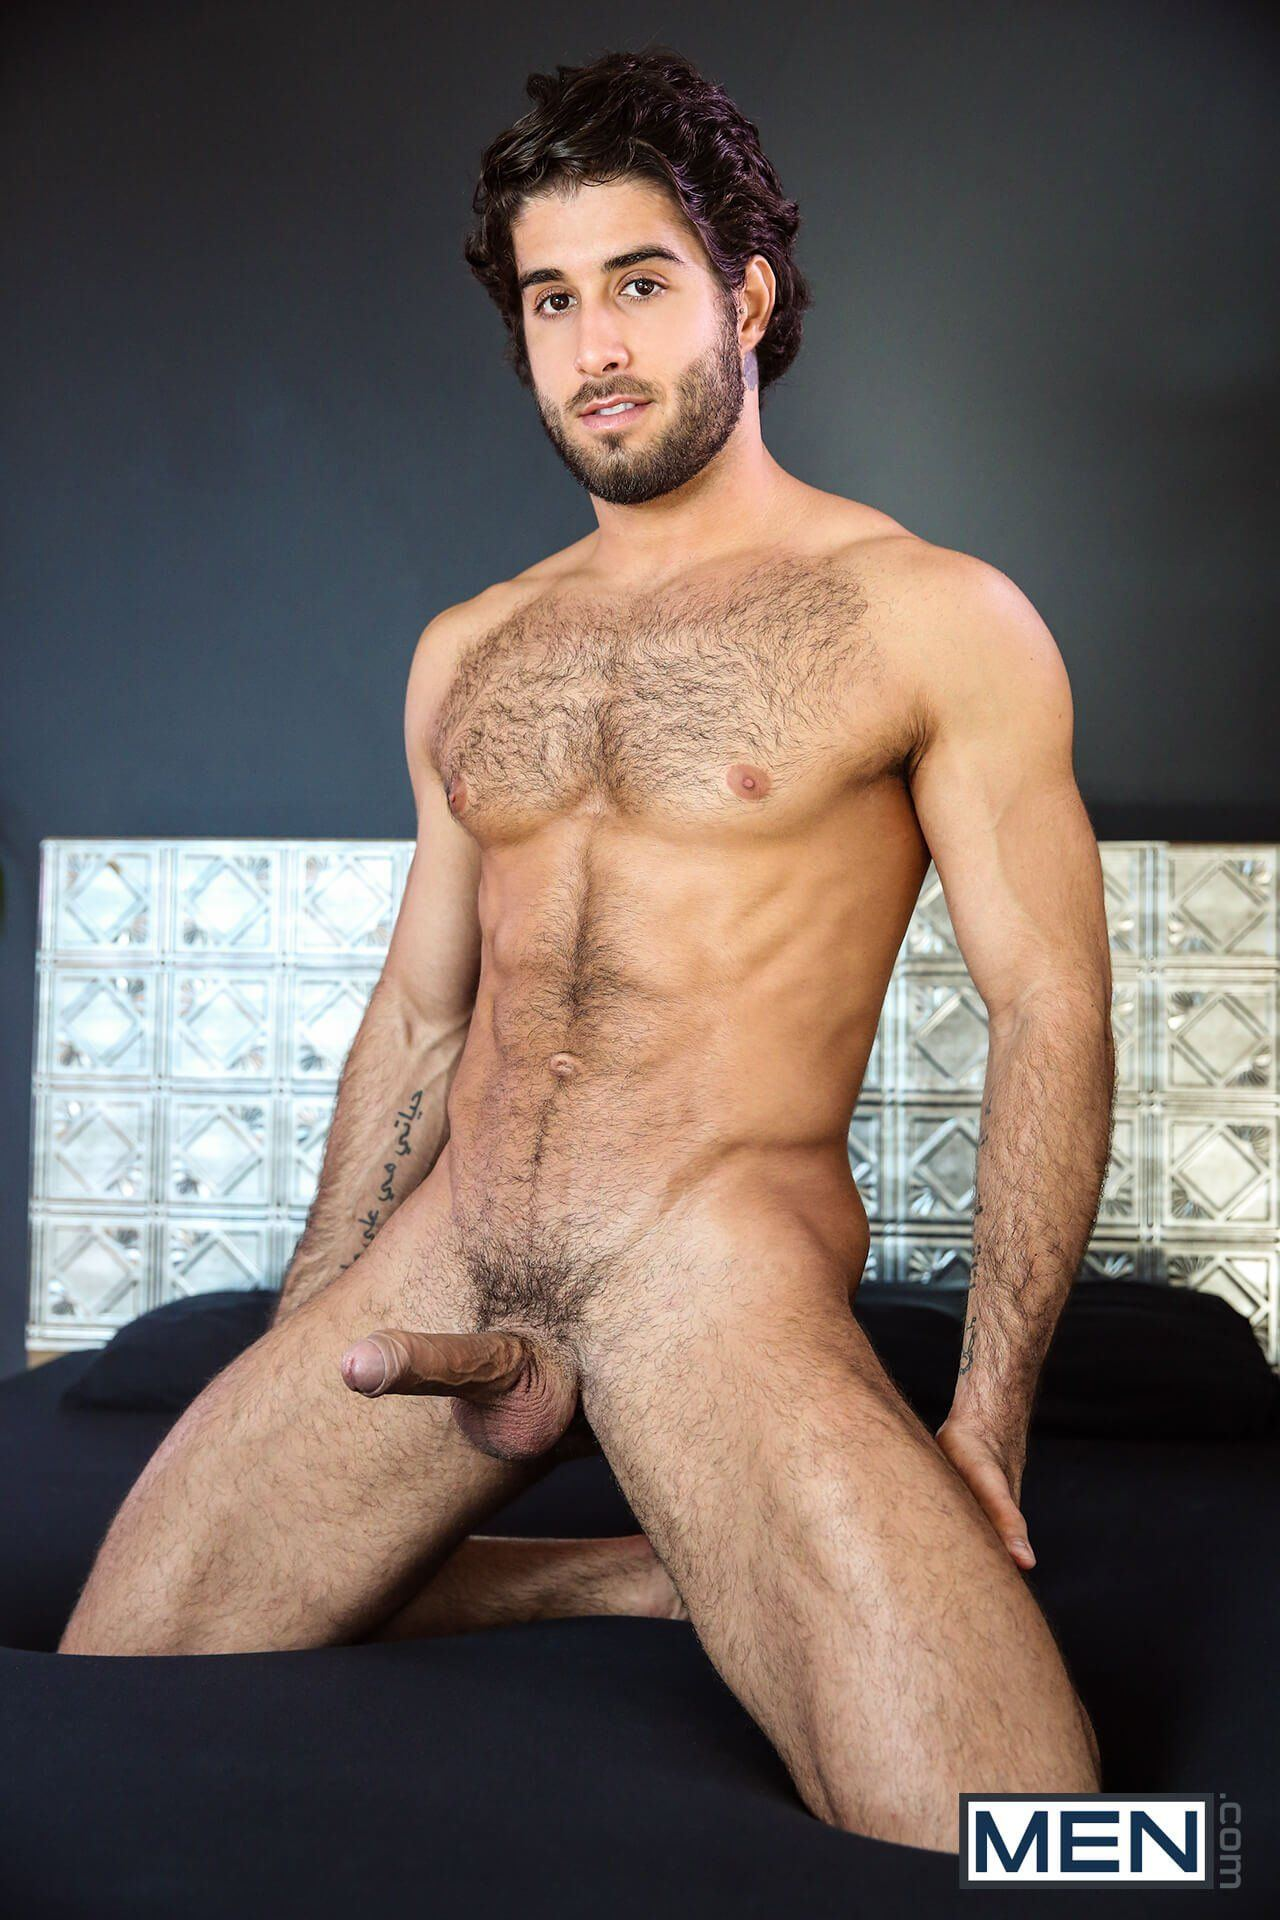 Newly Uploaded Amature Porn Videos blog man video sexo gay . new sex images. comments: 5